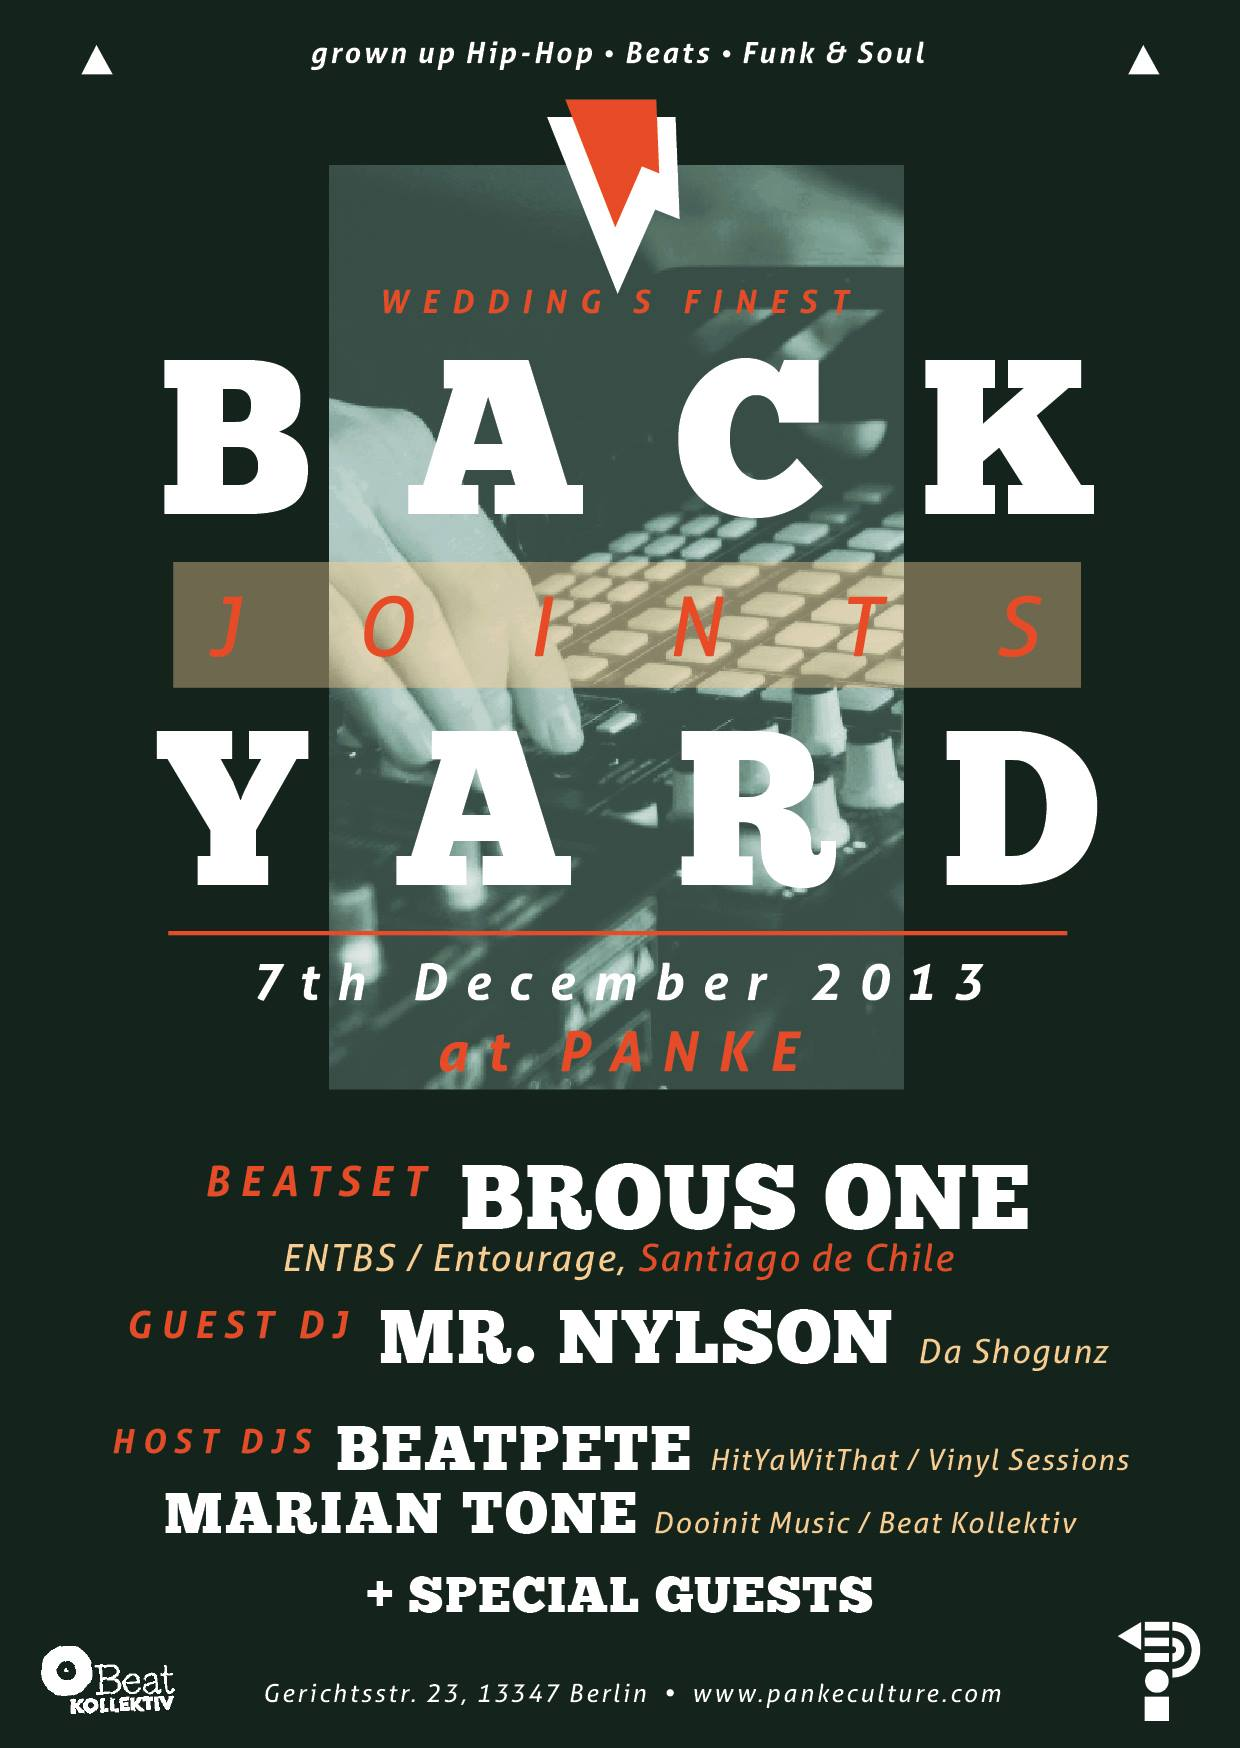 BACKYARD JOINTS @ Panke (Berlin) – Beat Set: Brous One / DJ's: Marian Tone, Mr. Nylson, BeatPete & Guests